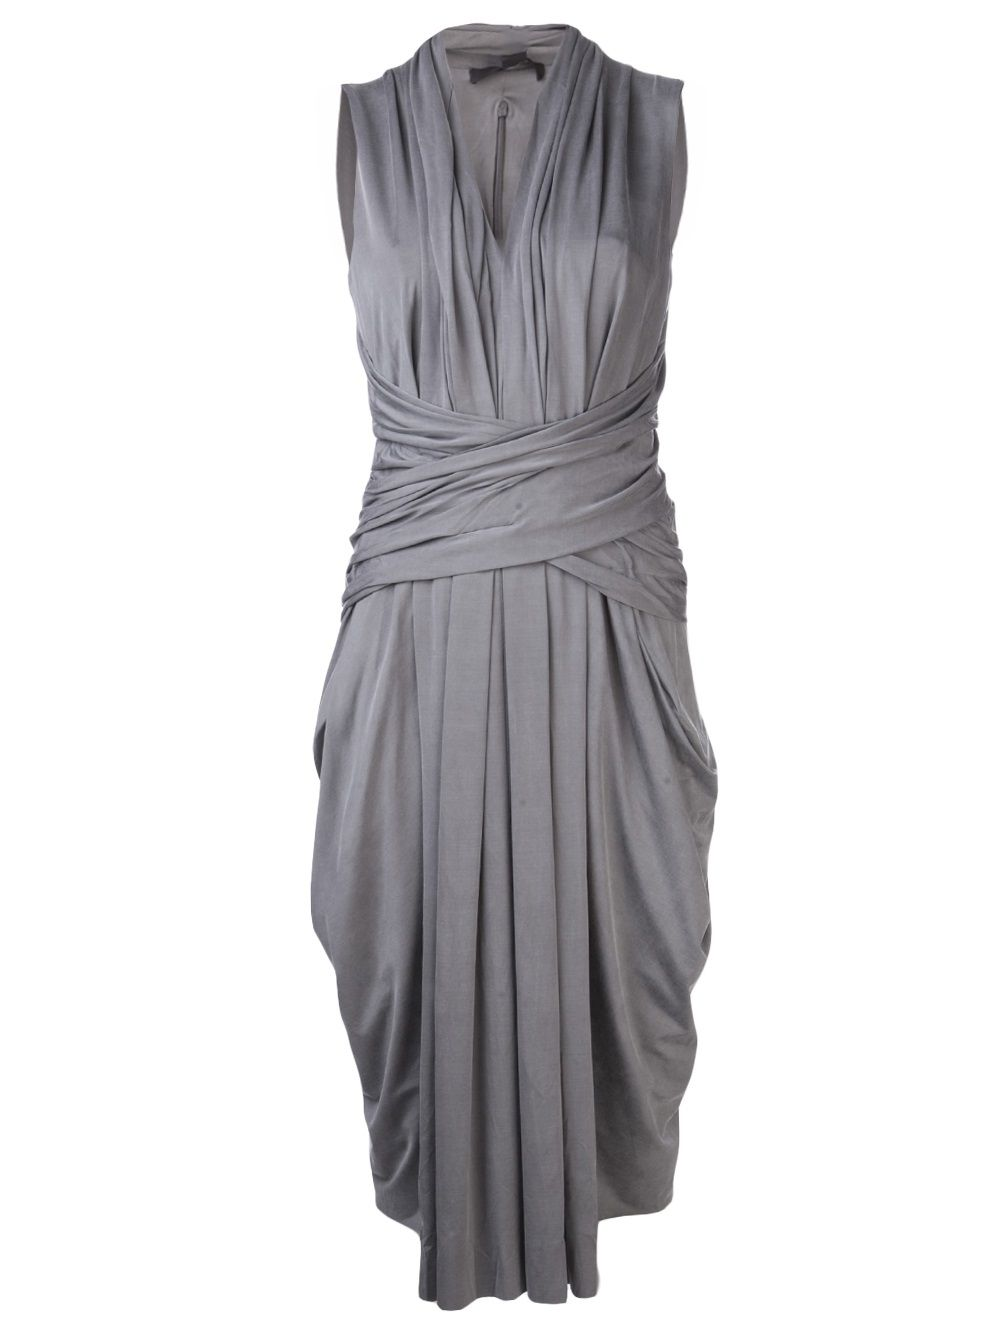 What to wear over a sleeveless dress to a wedding  Alexander Wang vneck sleeveless dress  Dresses  Pinterest